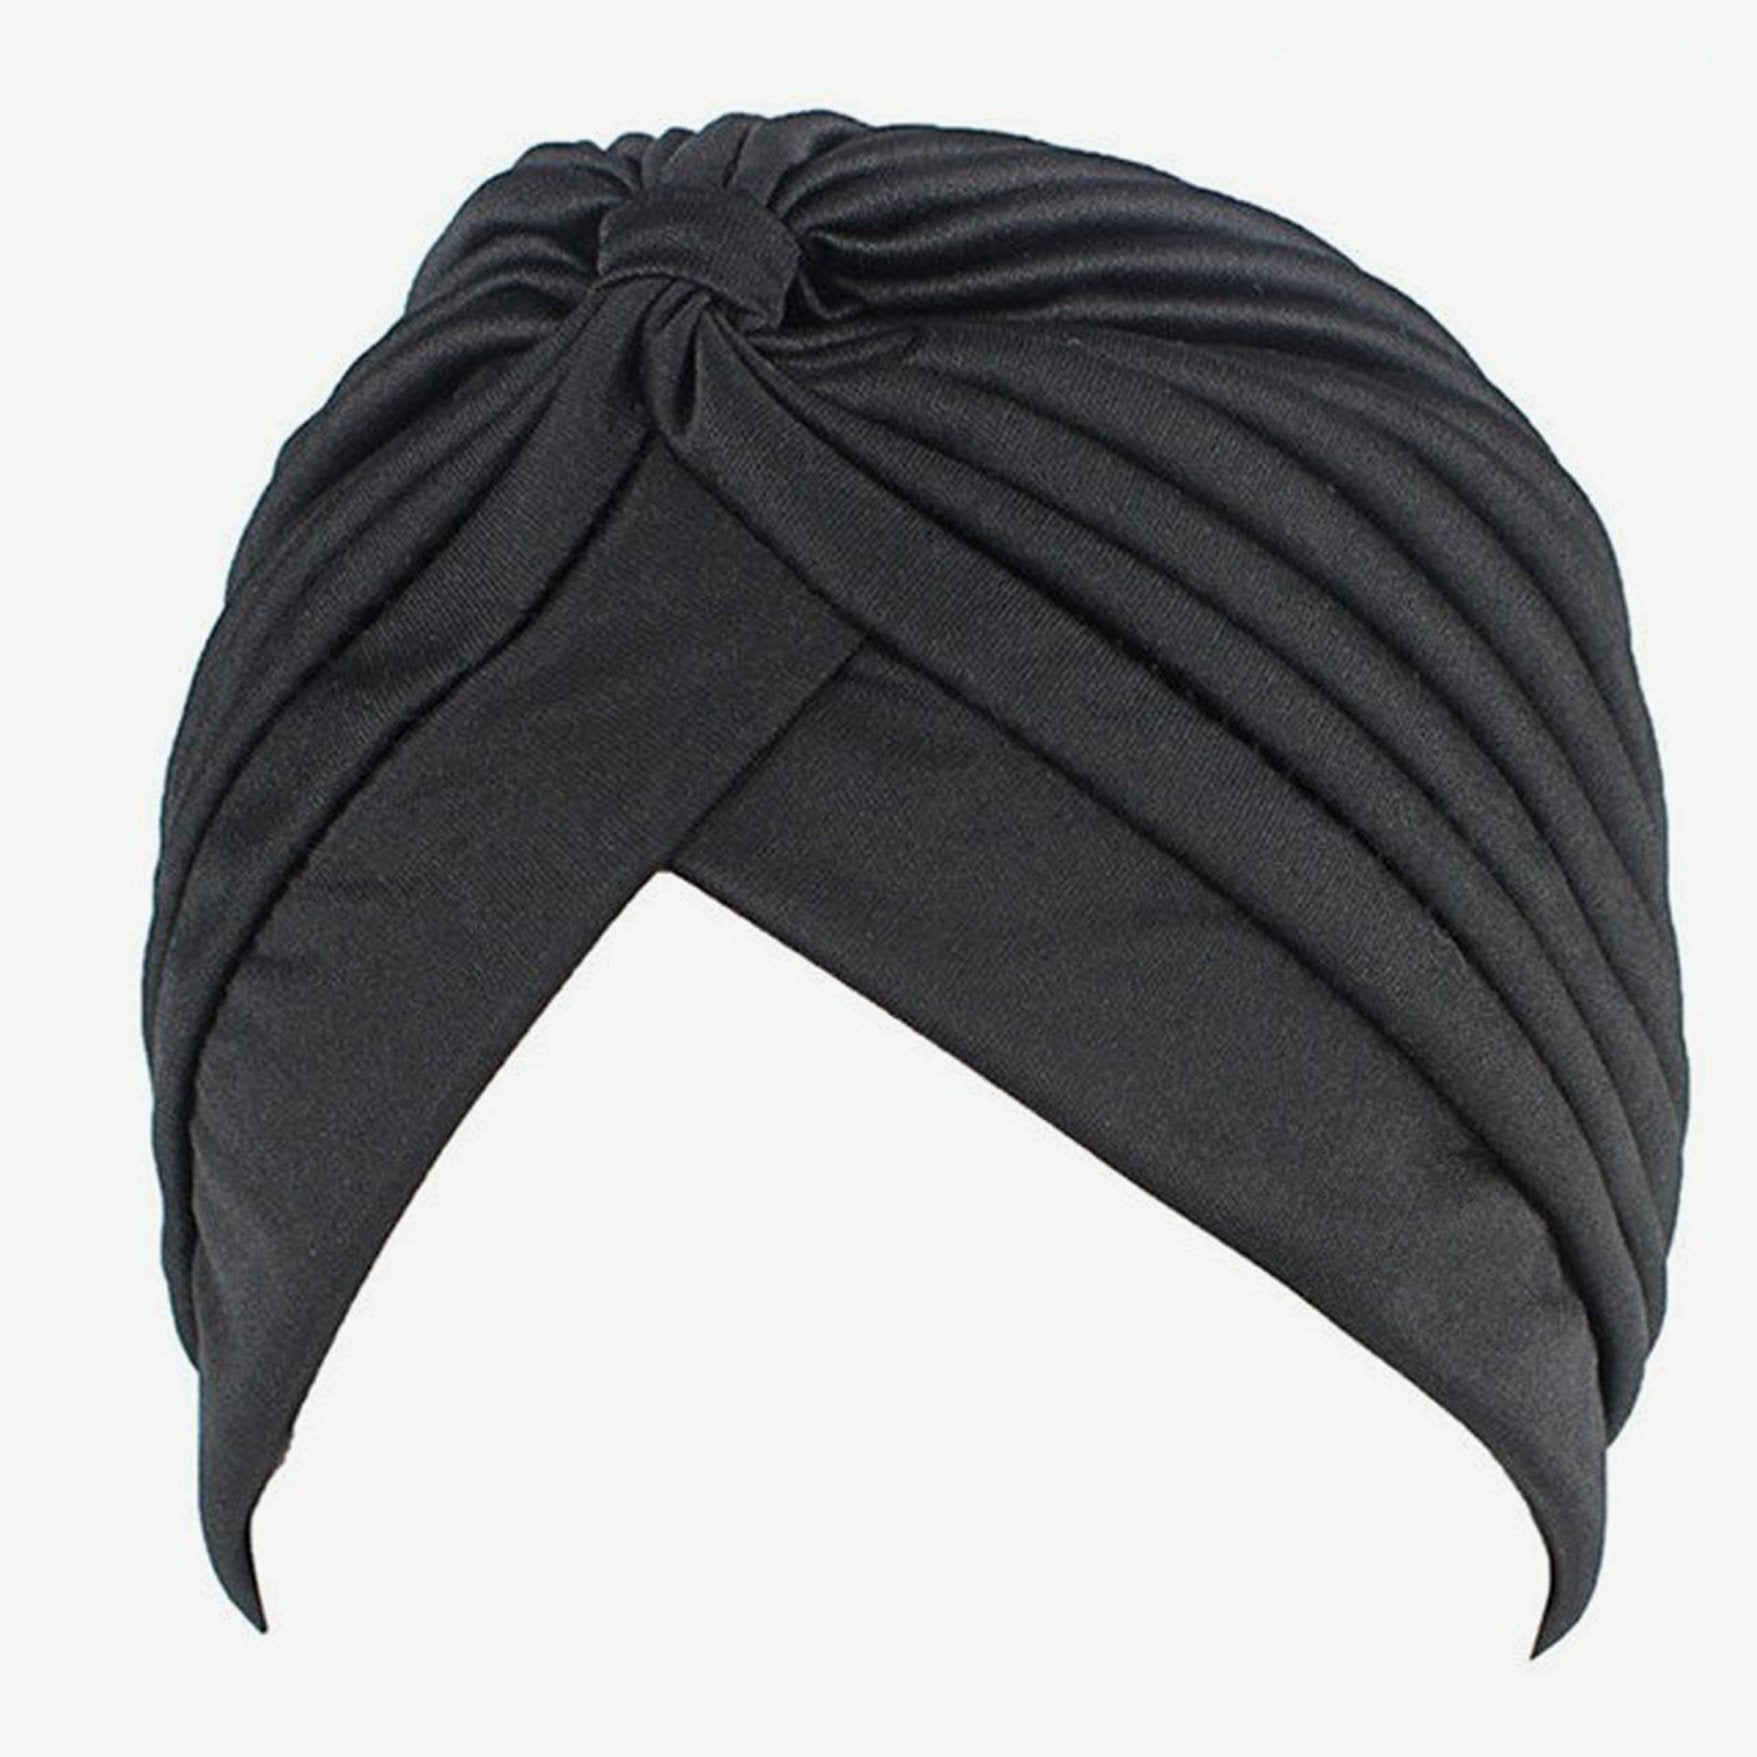 SALE item* Sana ladies black turban, vintage head-wrap, lightweight beanie, stretch headband,chemo cap,ladies cancer hat, women's skull cap